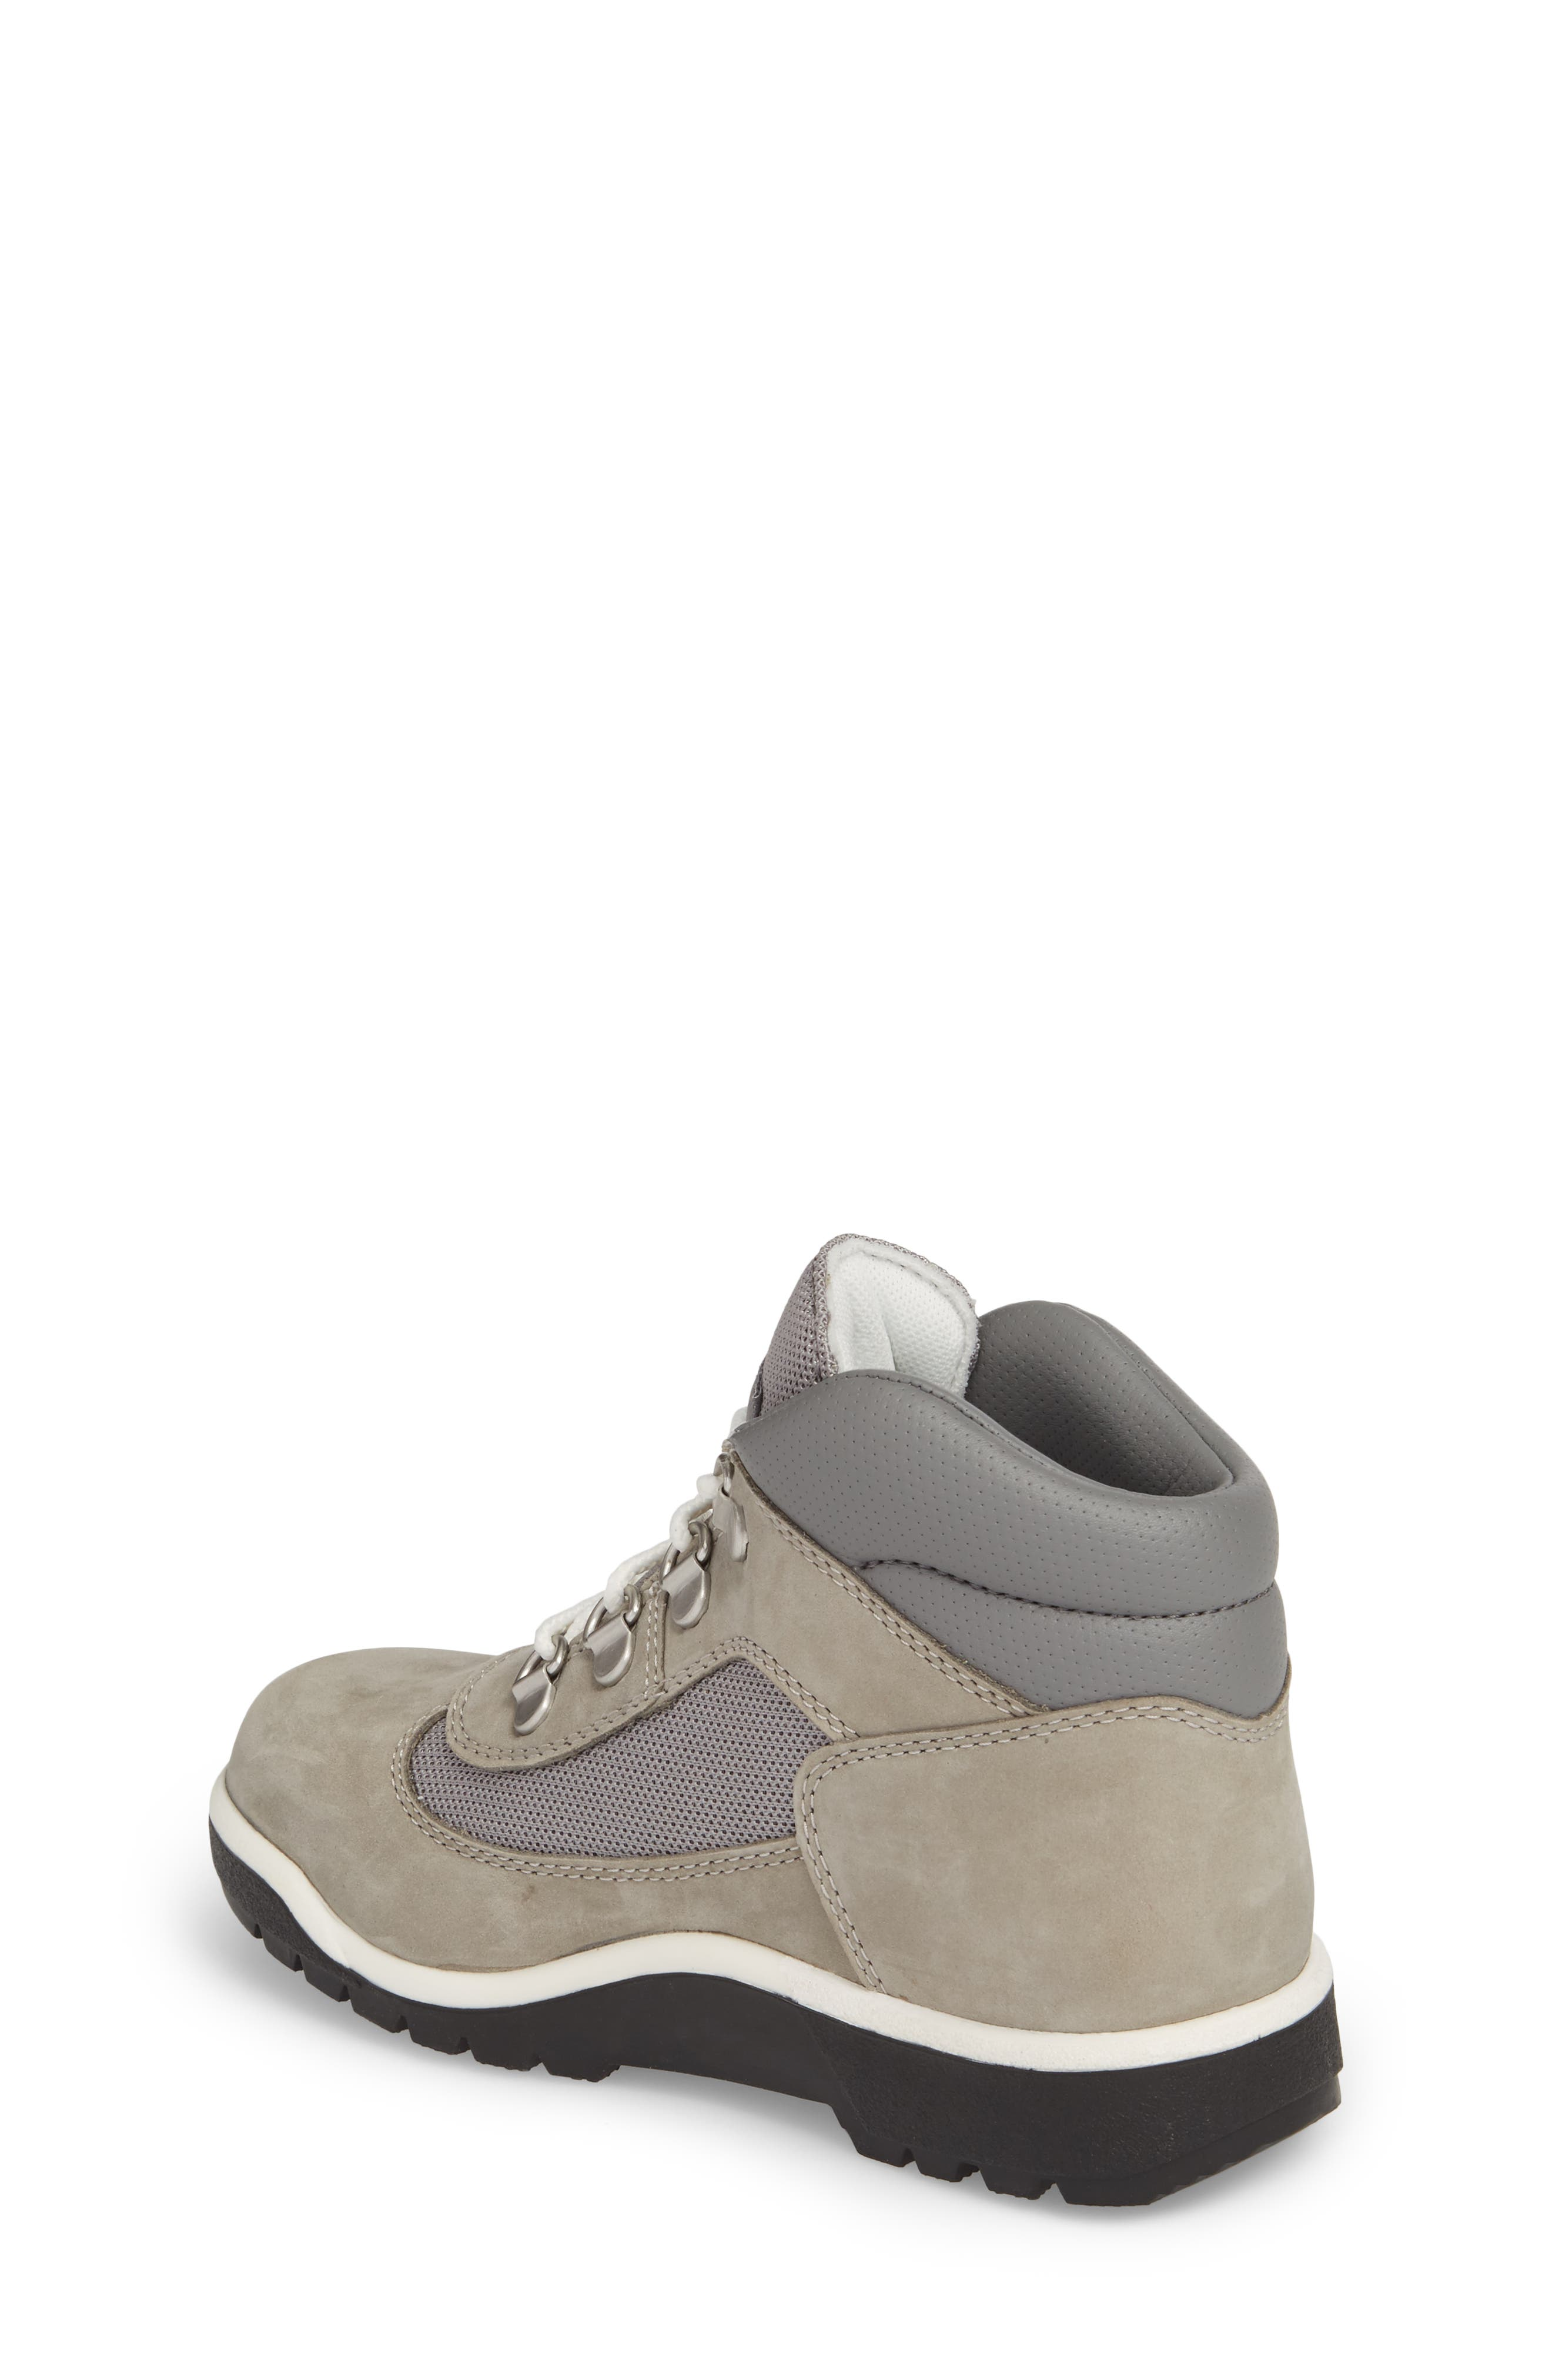 Water-Resistant Chukka Field Boot,                             Alternate thumbnail 2, color,                             Lite Grey